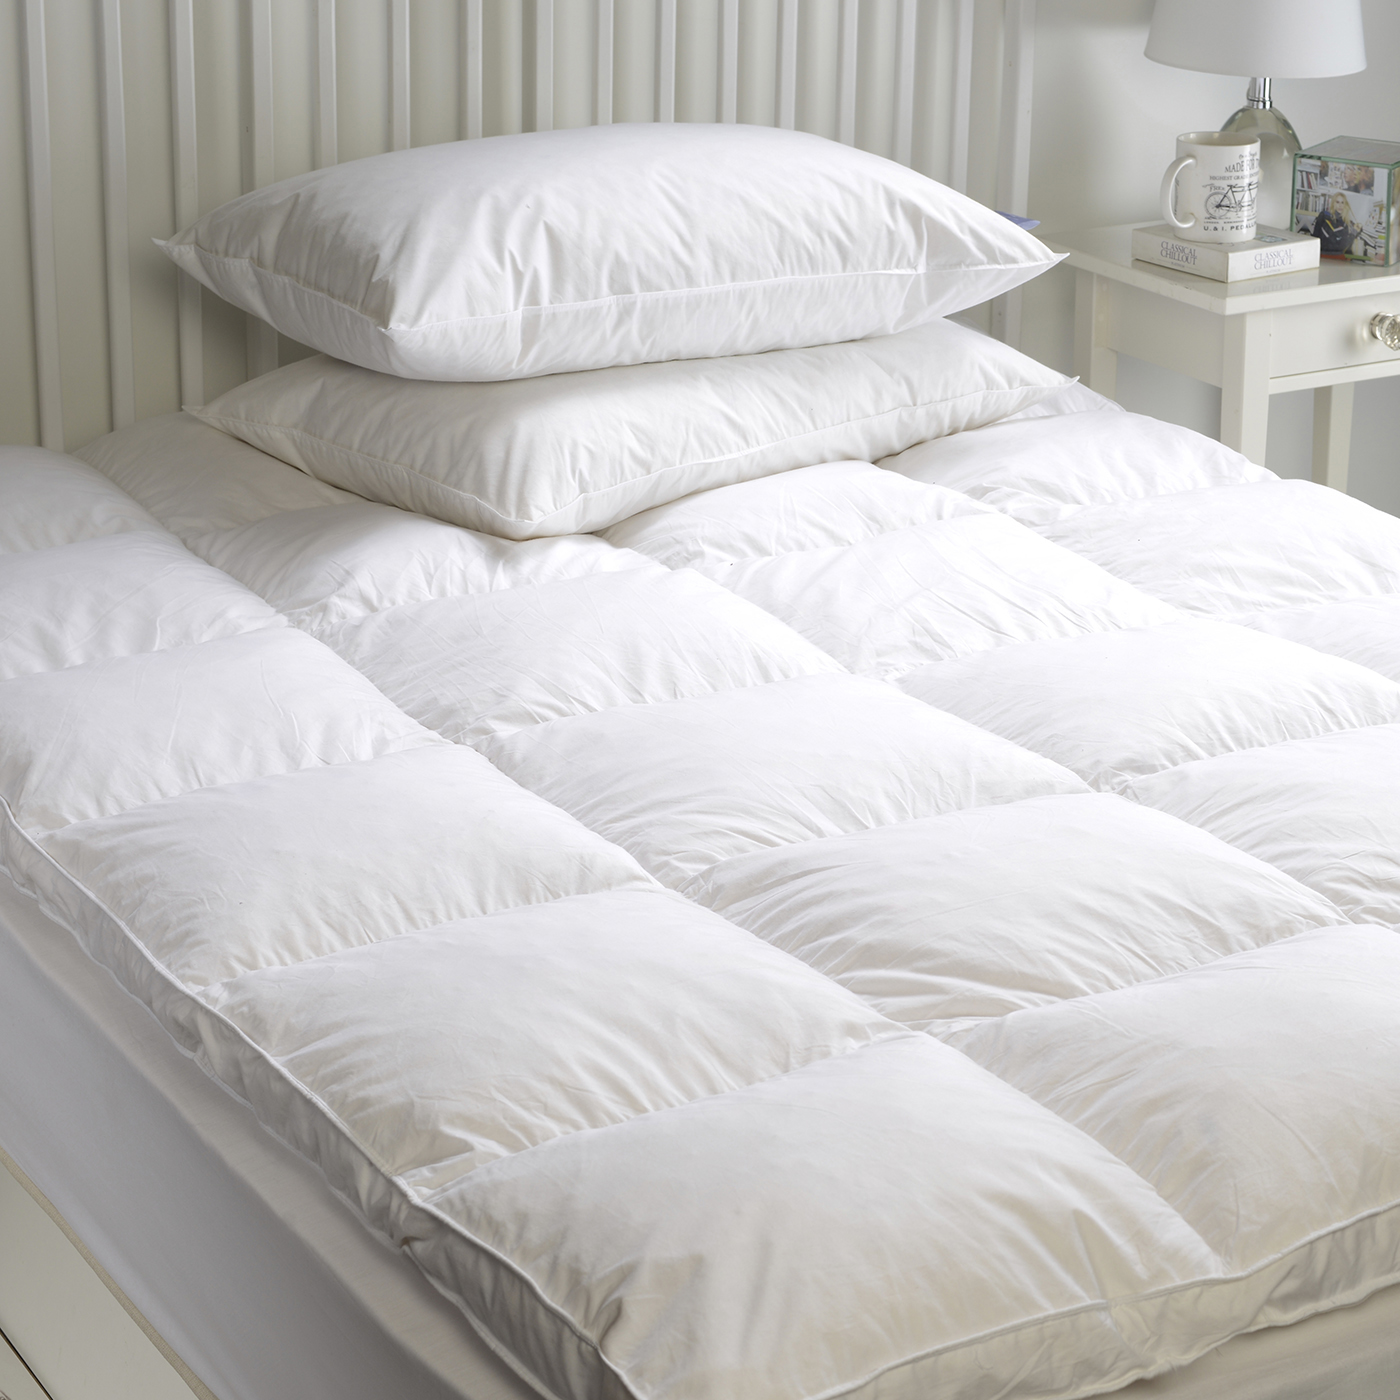 Single Bed Topper Goose Feather And Down Mattress Topper Enhancer Cover